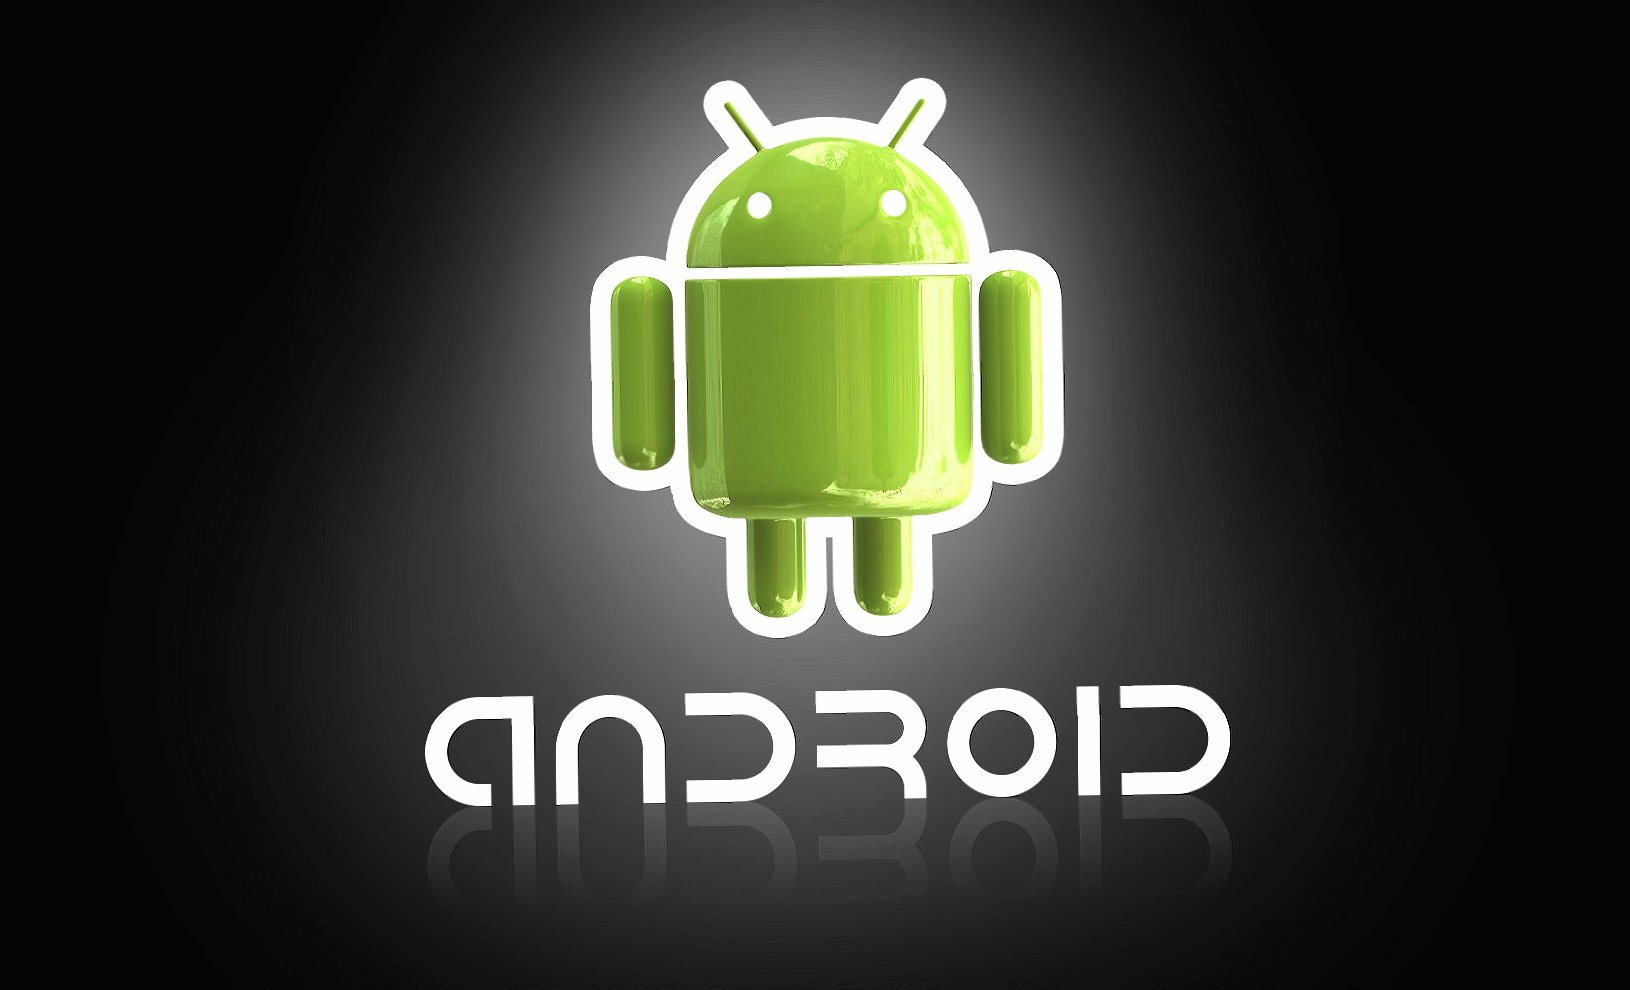 beautiful android wallpapers HD quality